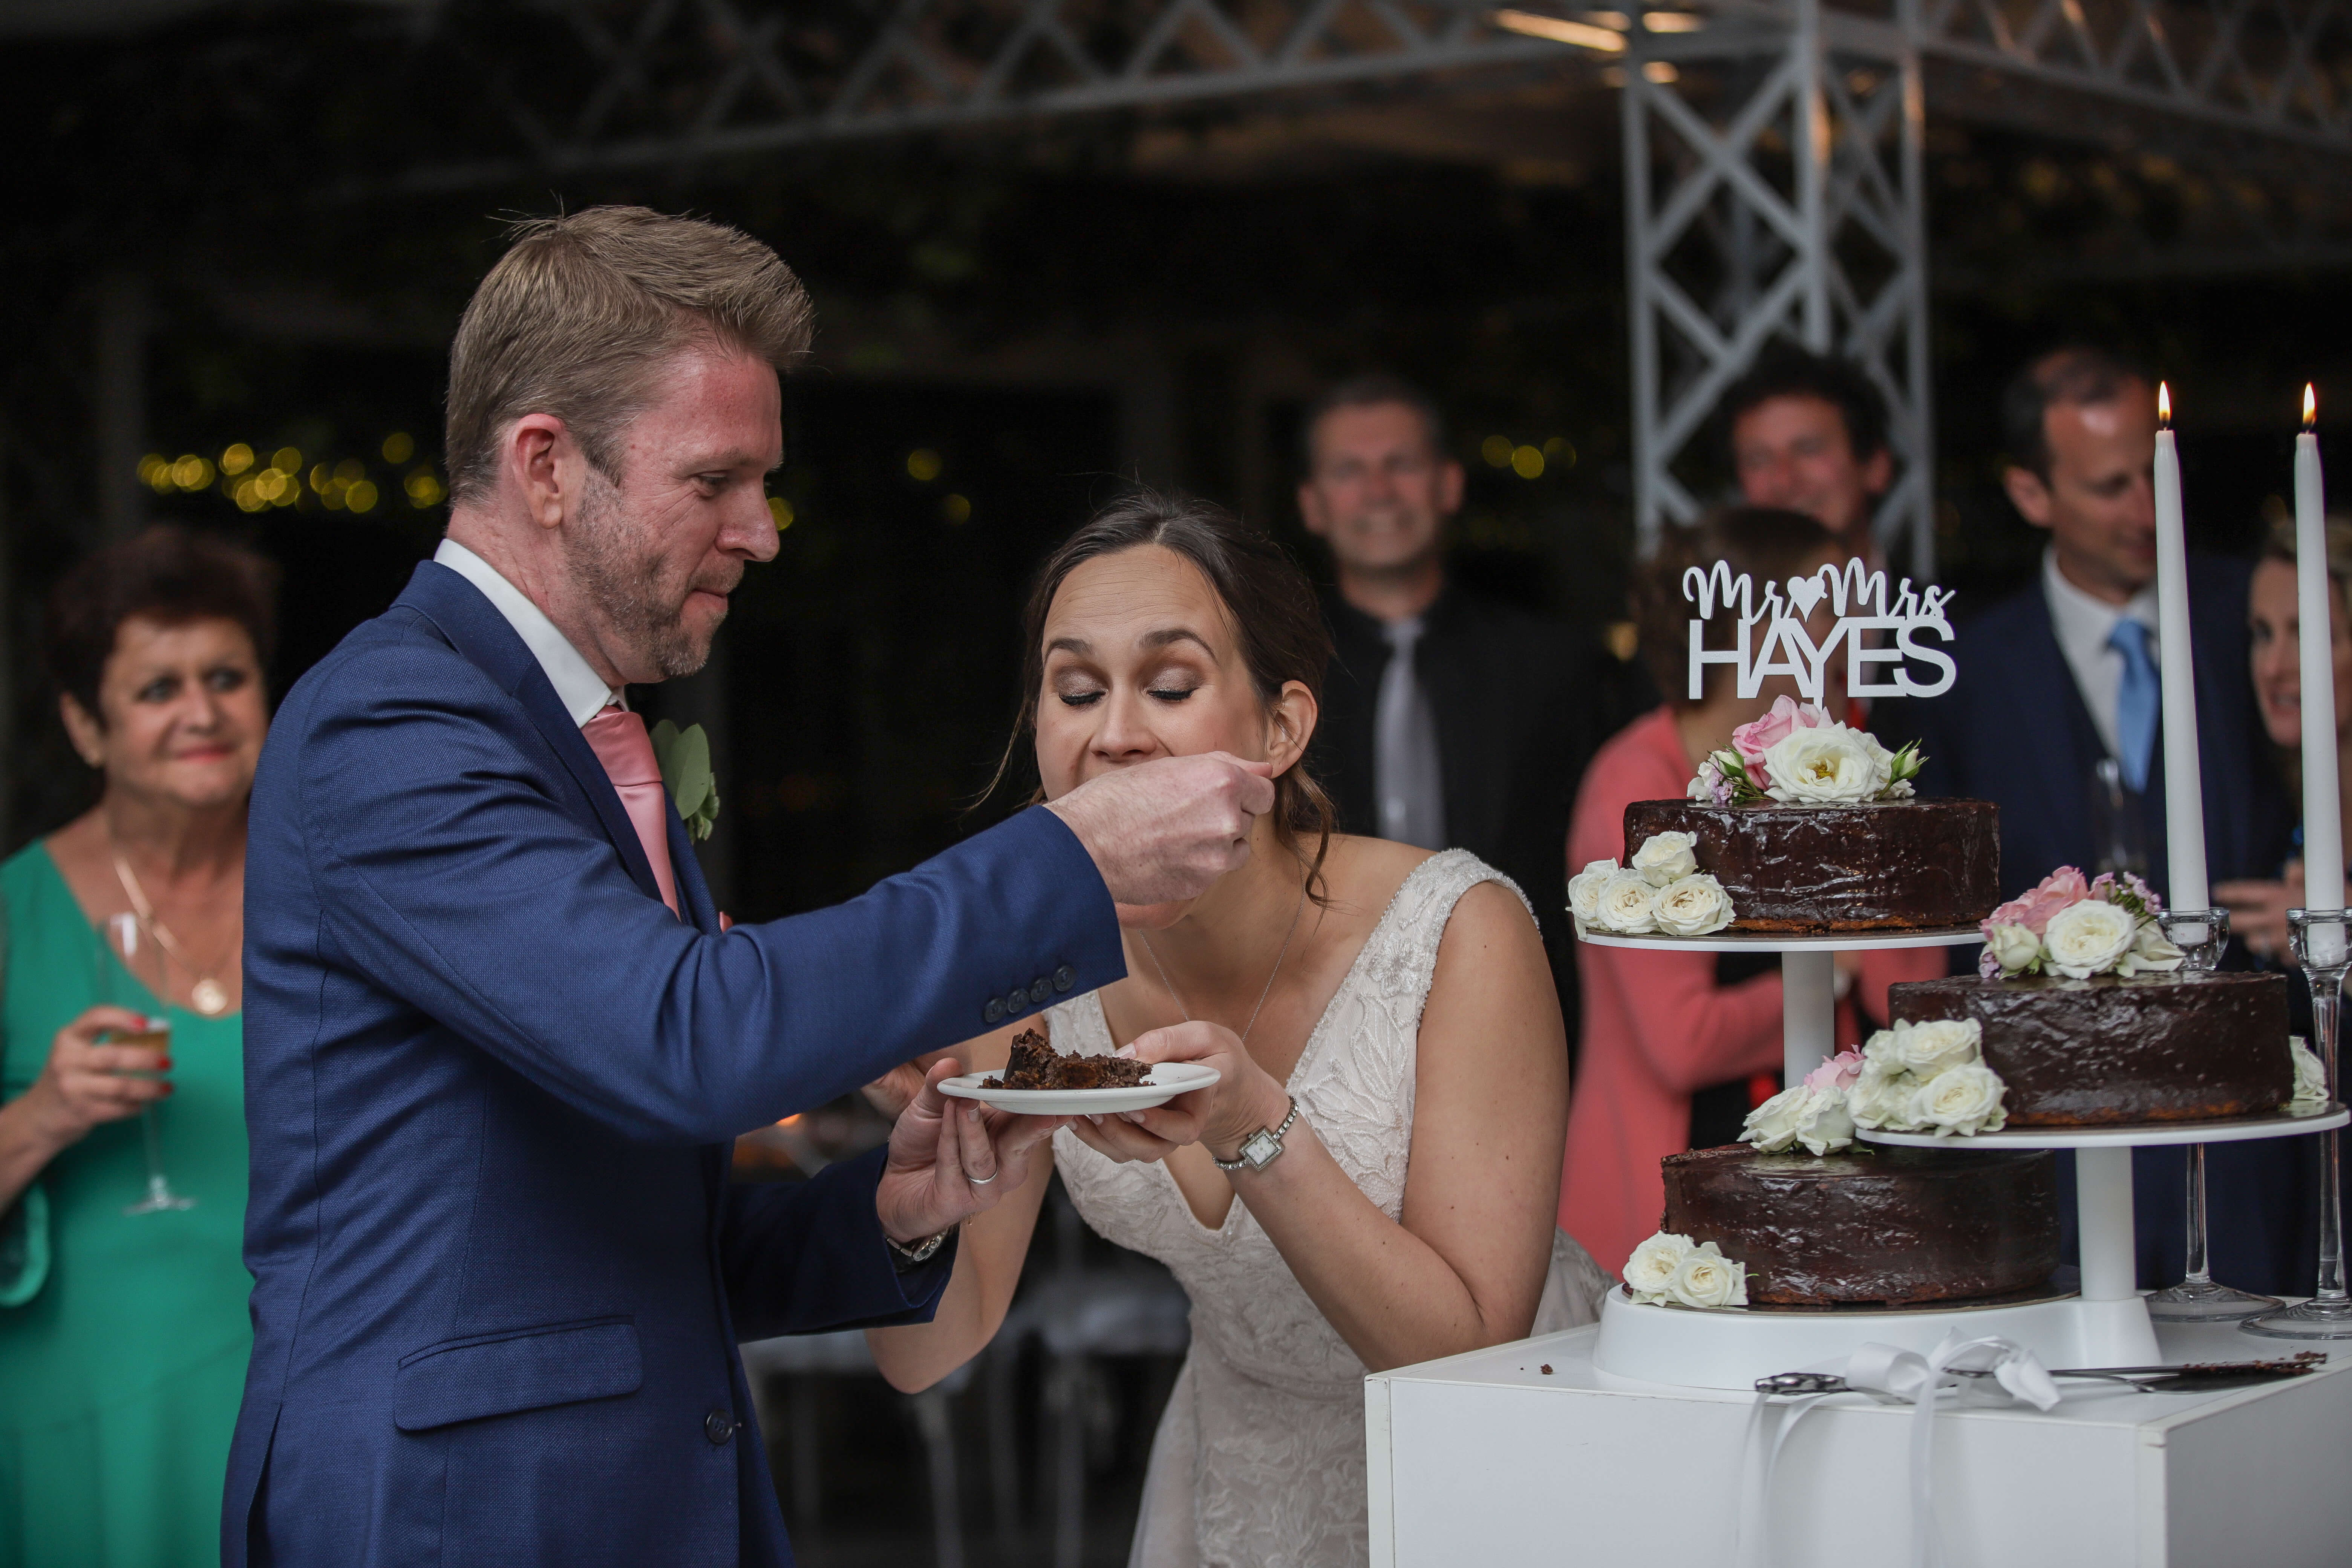 Bride and groom eating their wedding cake with a great song playing.